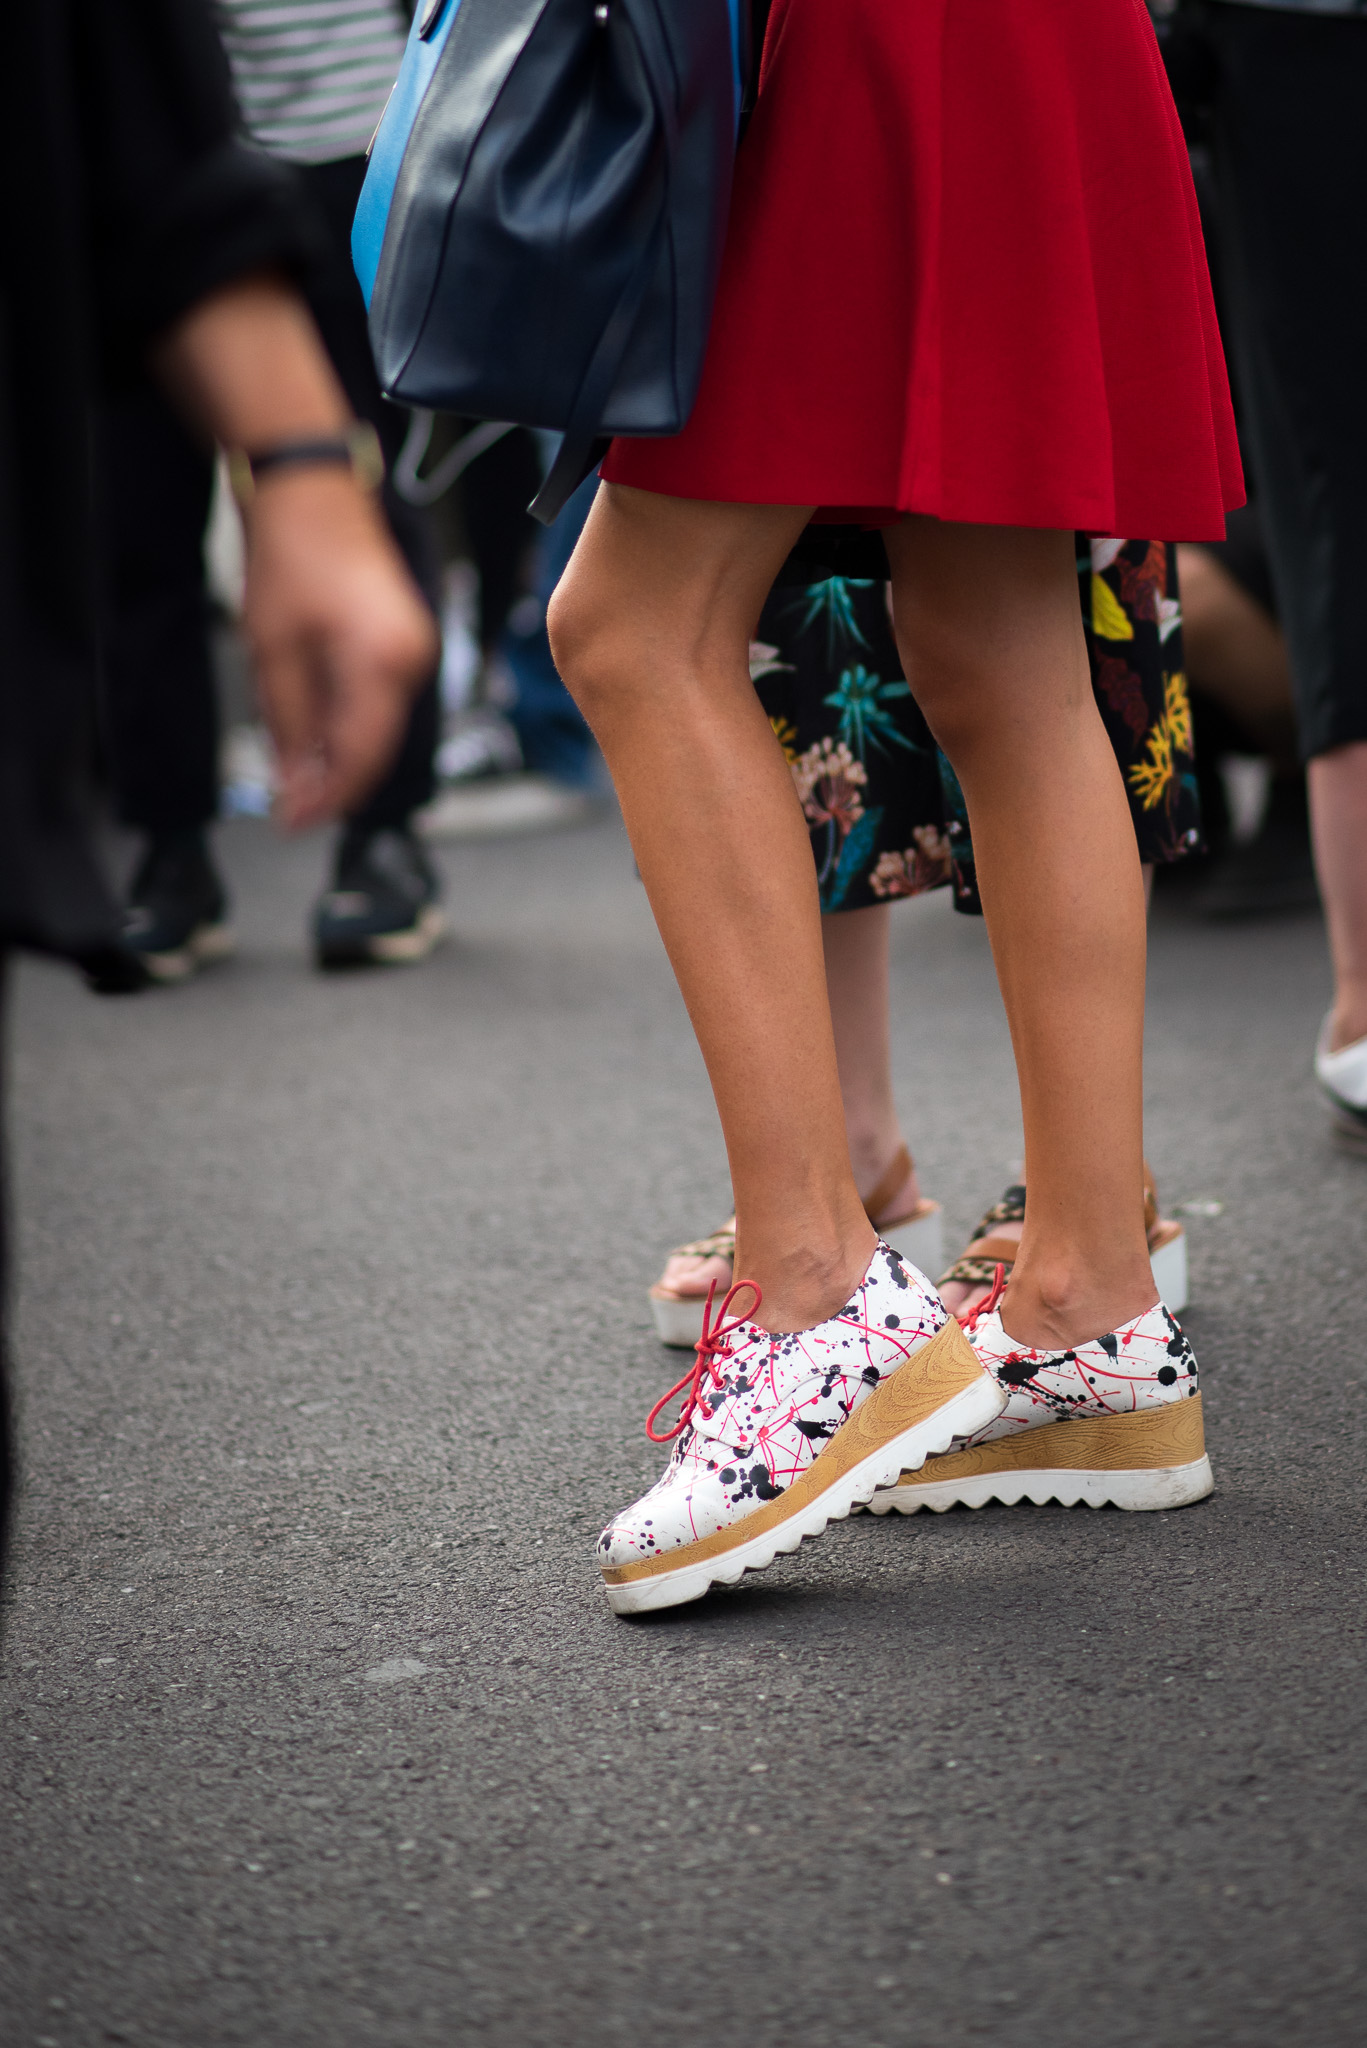 street-style_tods_milan-fashion-week_sept-2016_photography-annika-lagerqvist_www-annikasomething-com-1